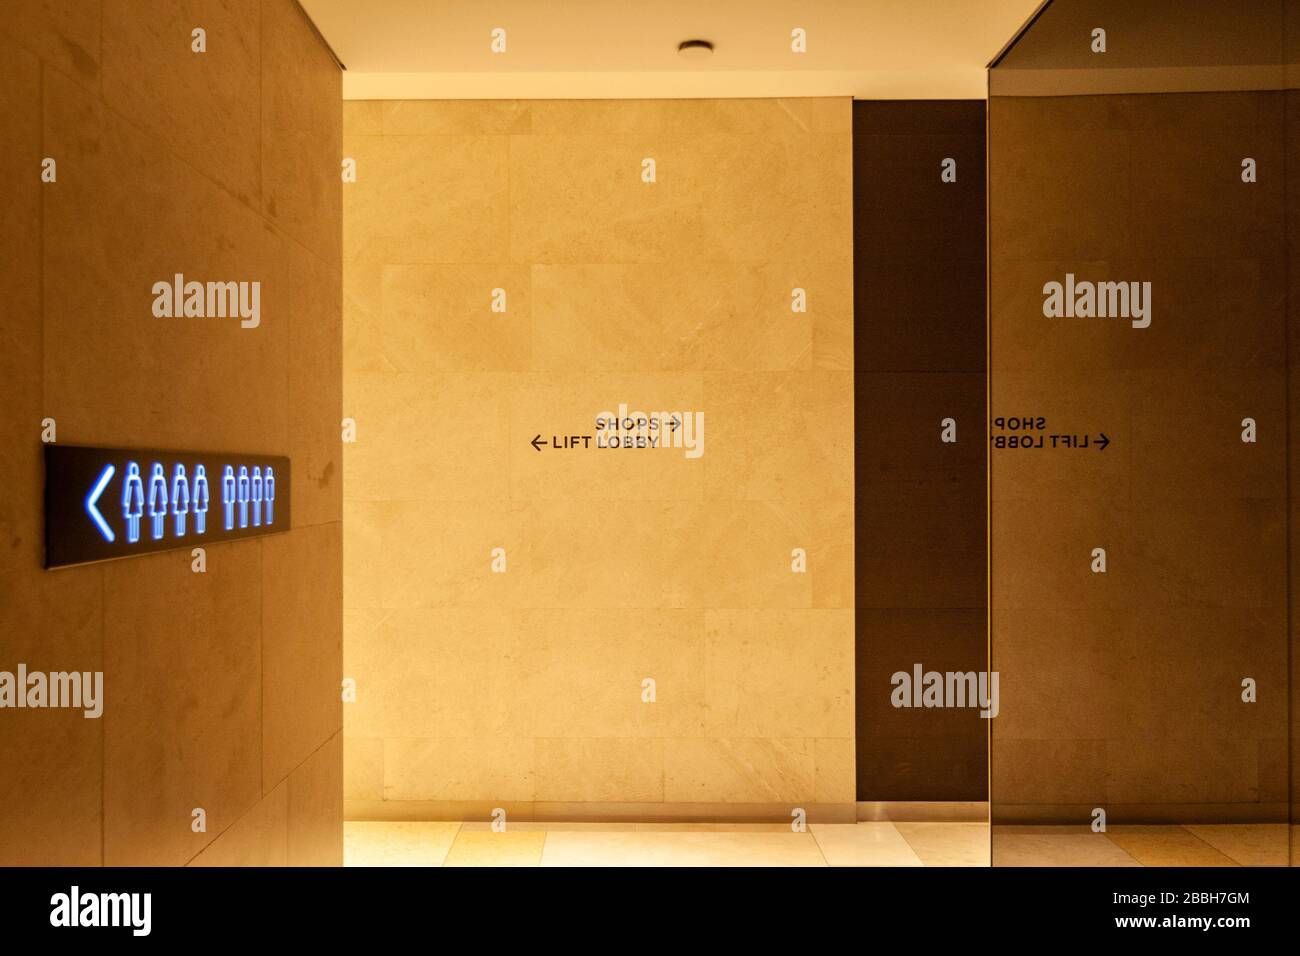 toilet-sign-in-ion-orchard-ion-orchardsh